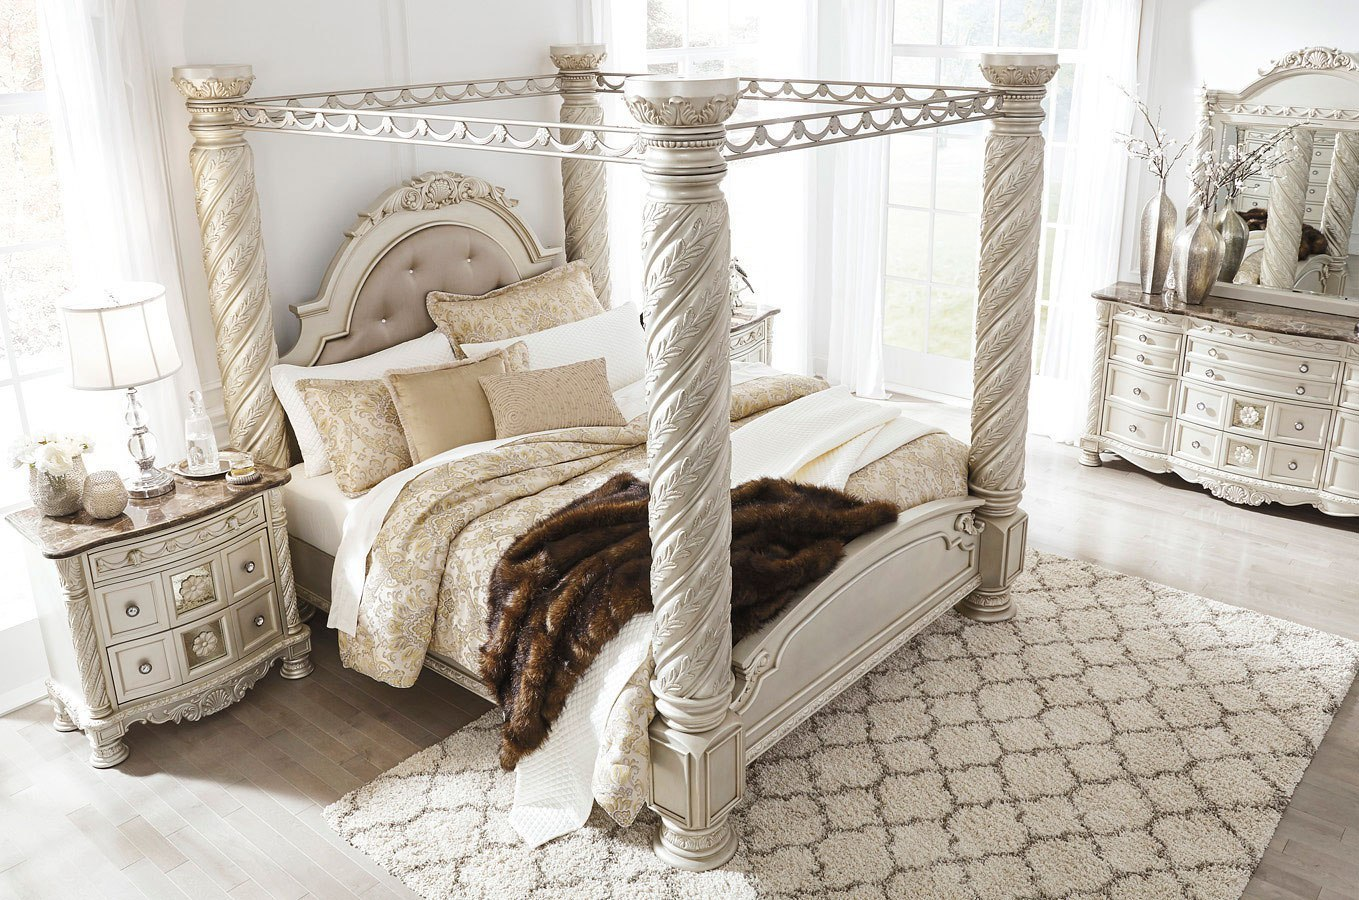 cassimore canopy bedroom set - Canopy Bedroom Sets